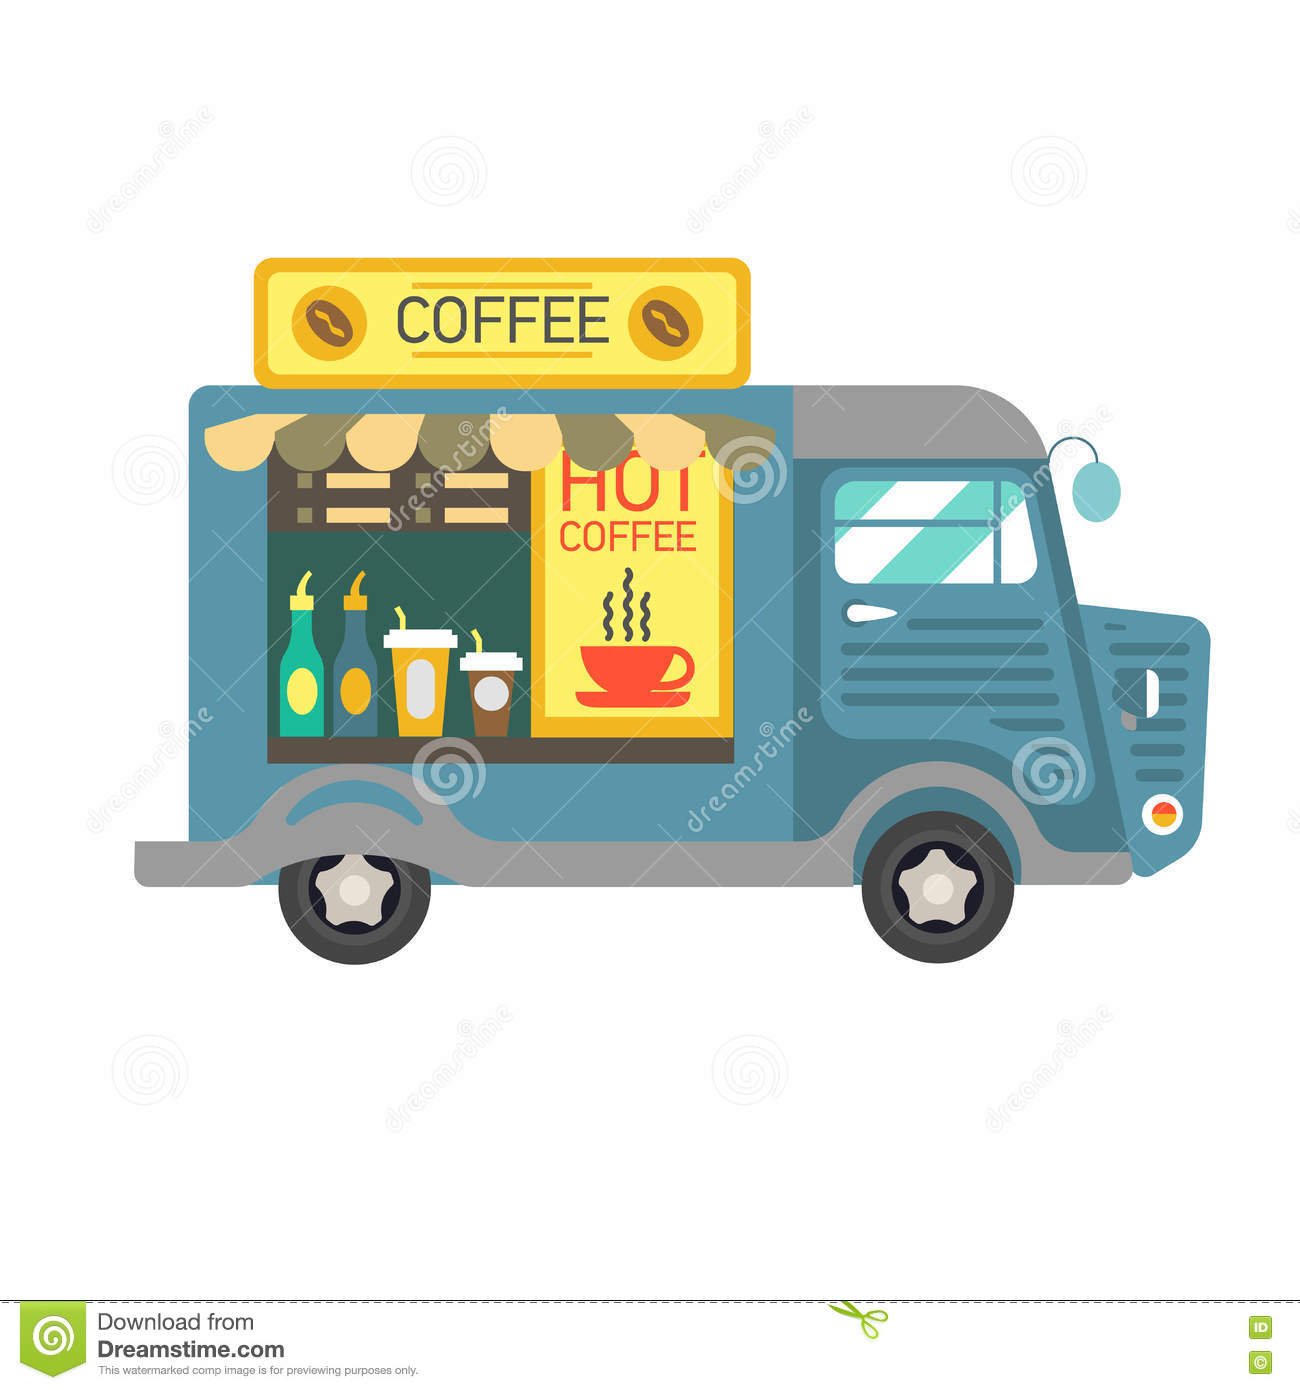 how to buy a coffee van business